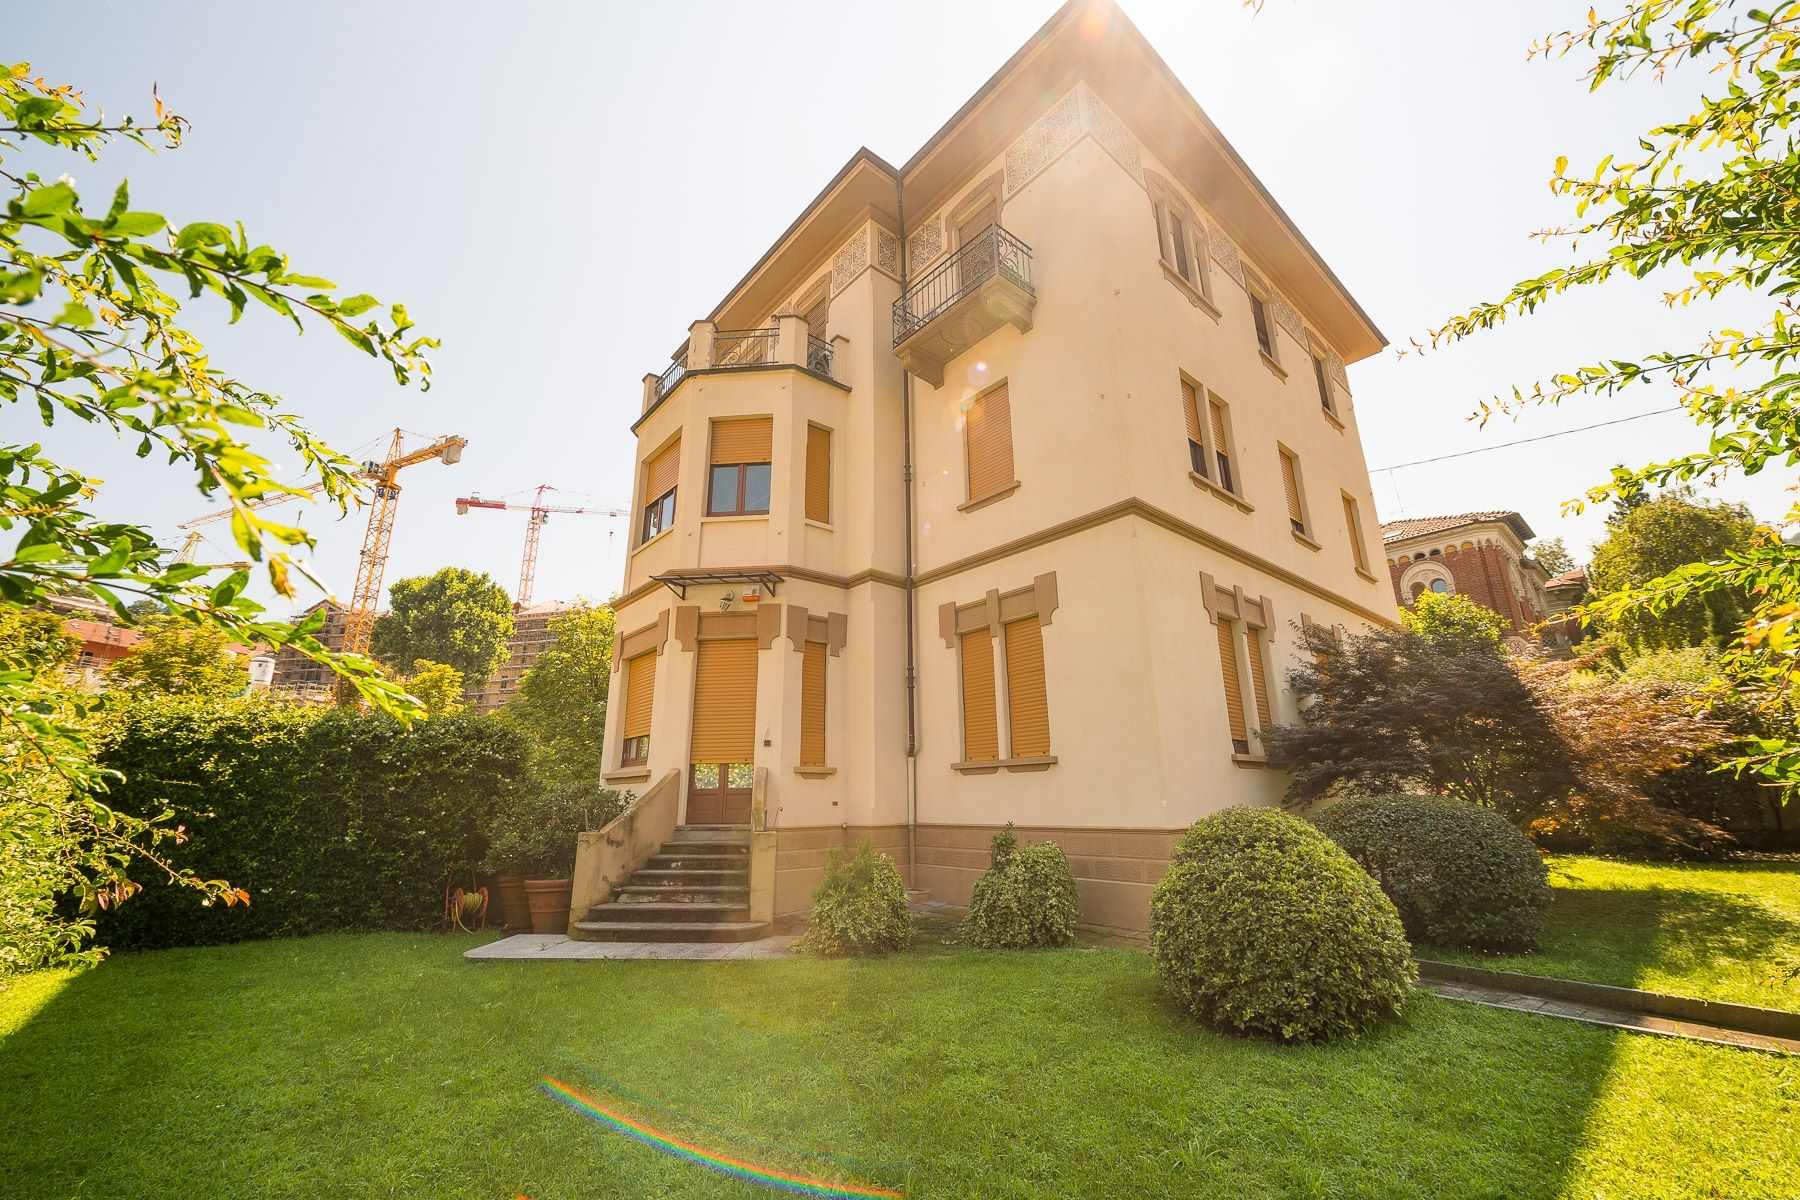 Other Residential Homes for Sale at Art Nouveau building in the Crimea neighborhood Torino, Turin Italy